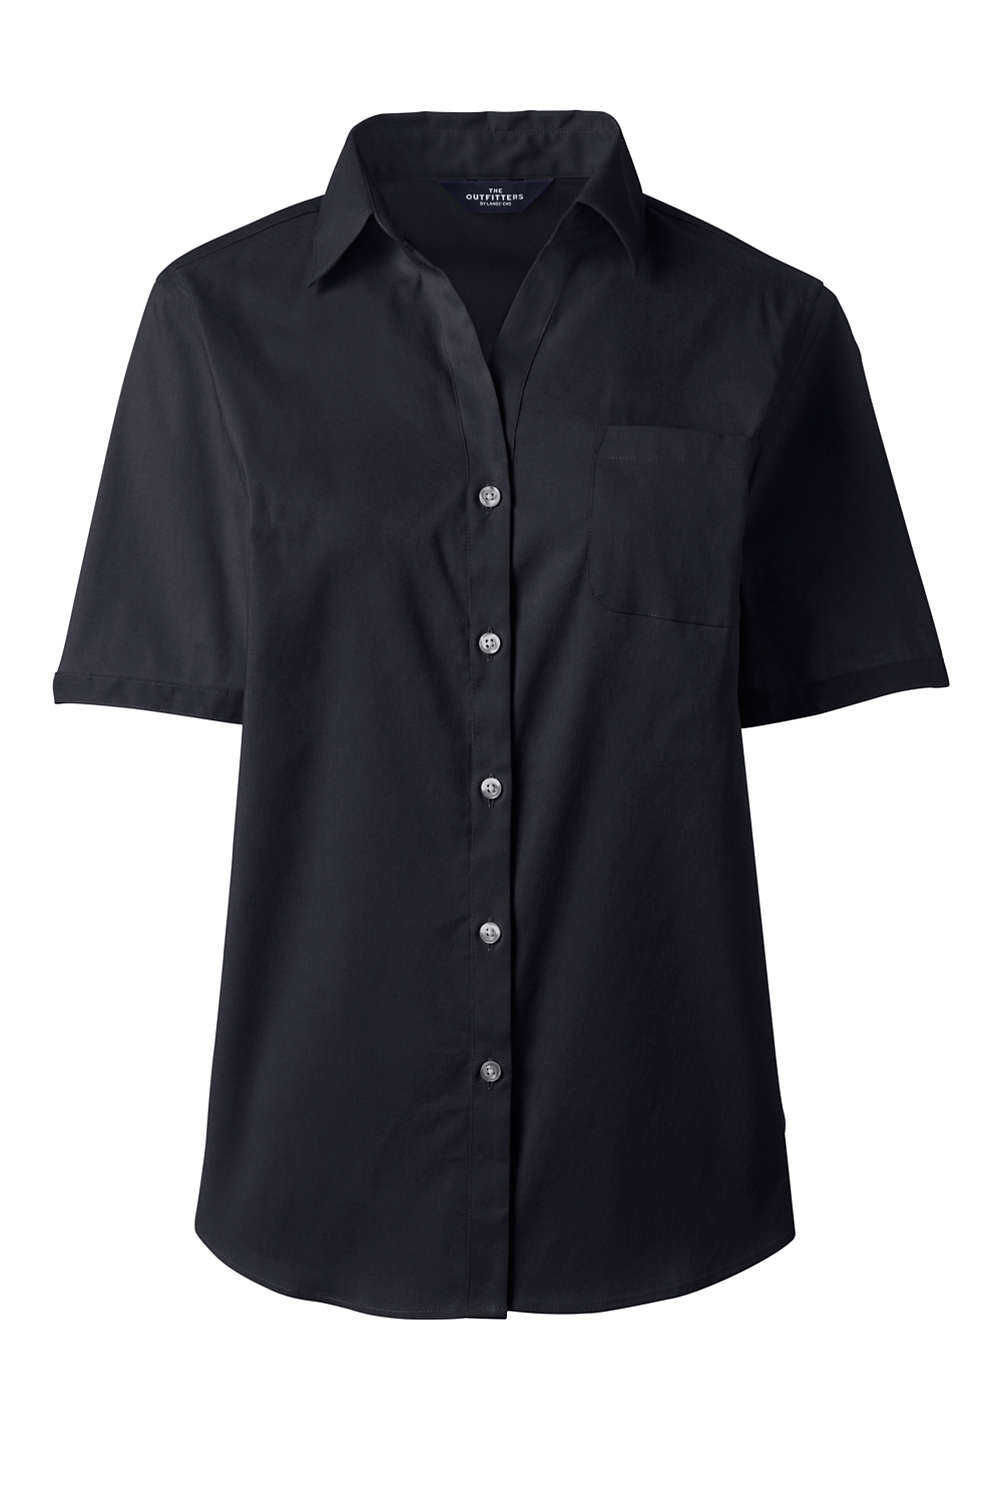 5ddd22a9 Women's Short Sleeve Stretch Shirt With Pocket from Lands' End